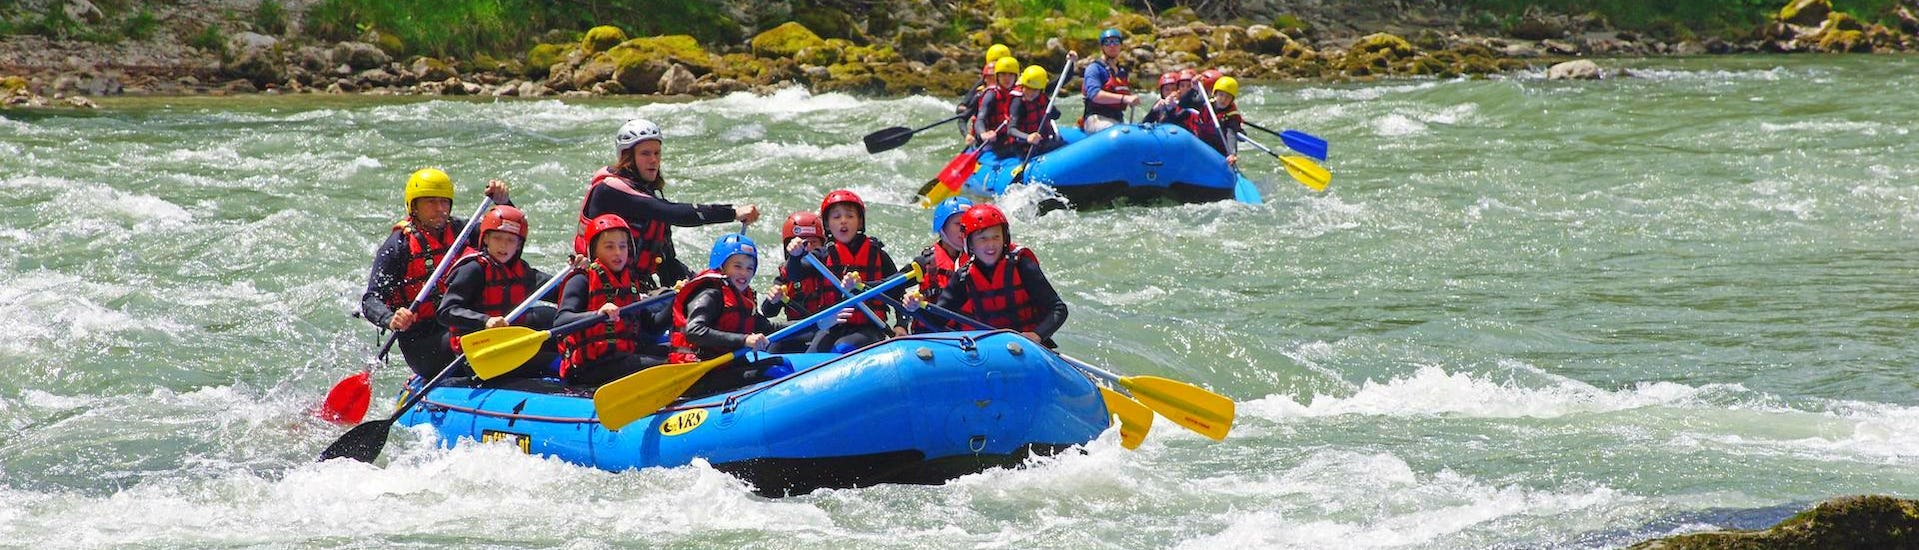 """Rafting """"Family Tour"""" - Enns in Gesäuse"""